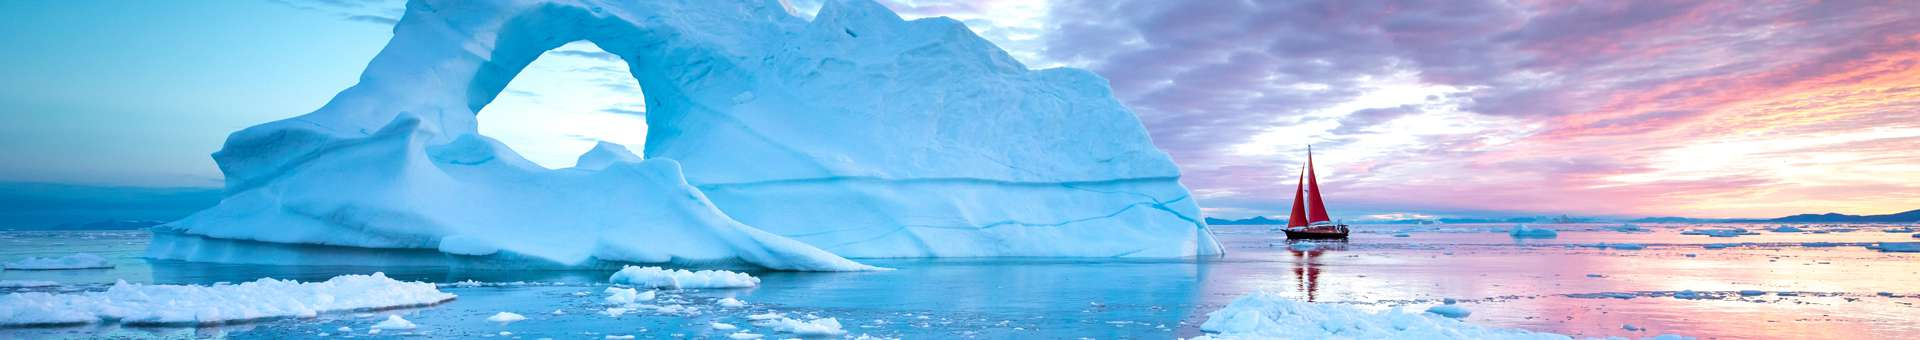 Search Whois information of domain names in Greenland